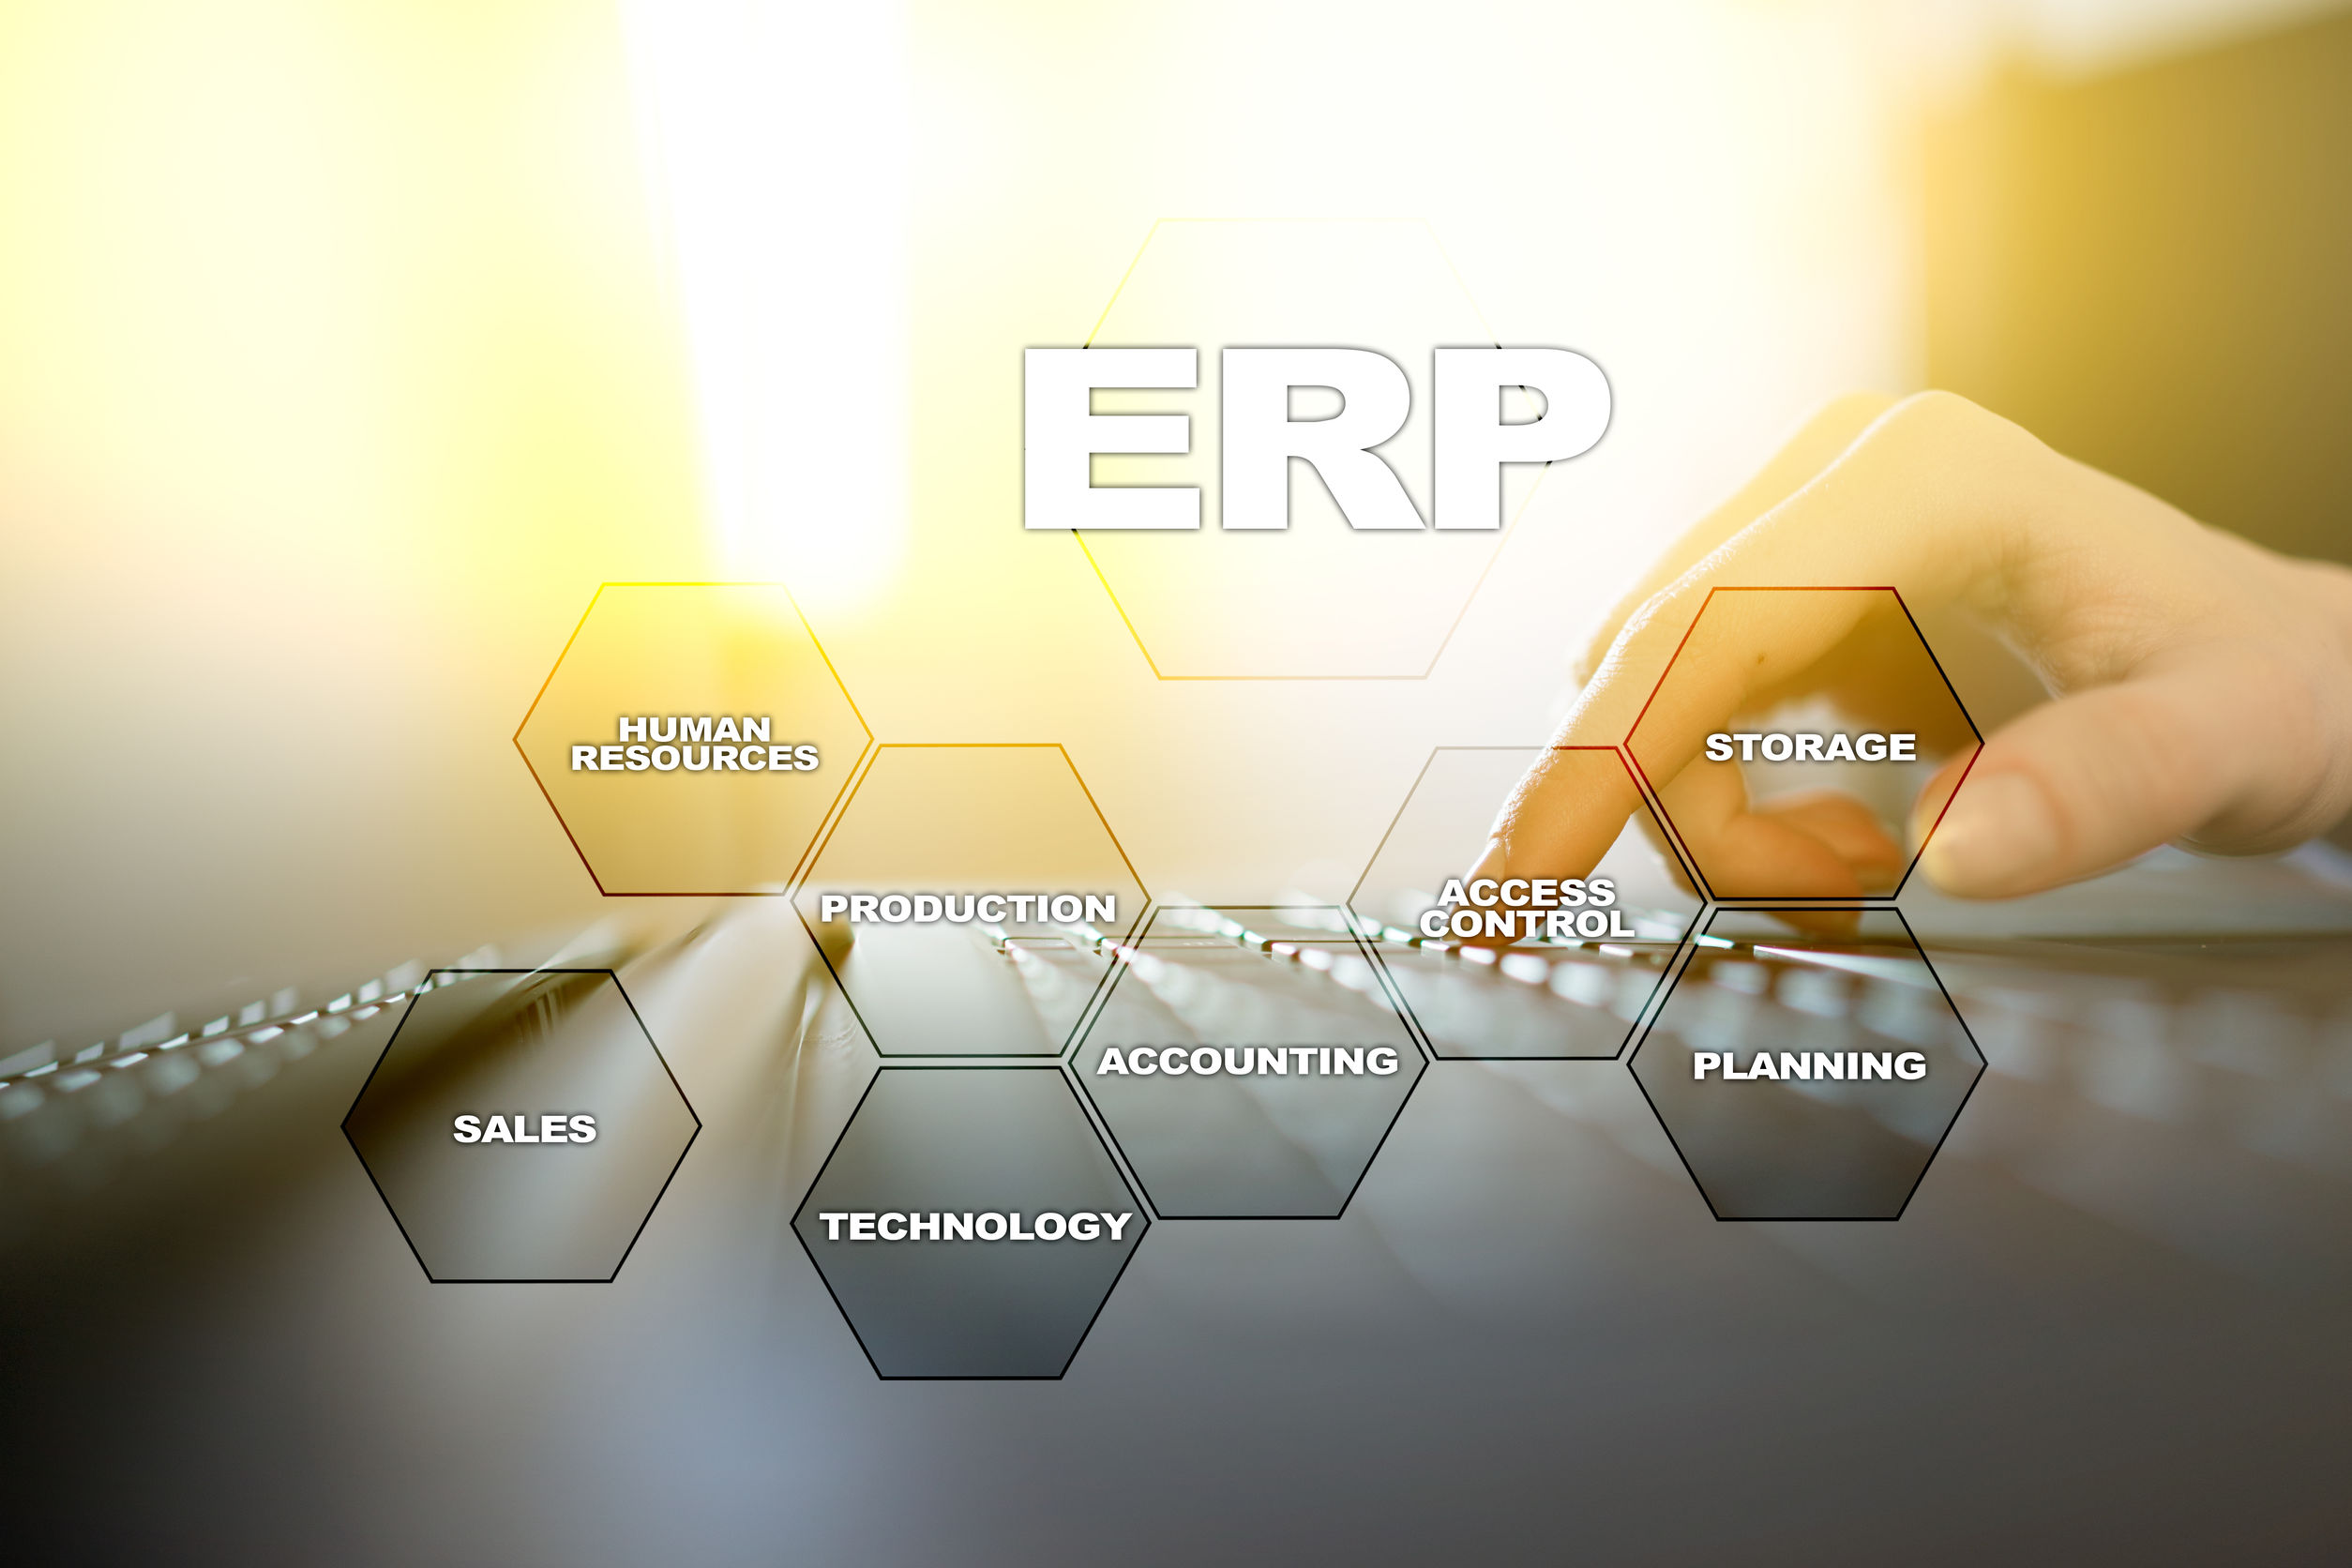 7 Tips for Selecting a New Enterprise Software Solution